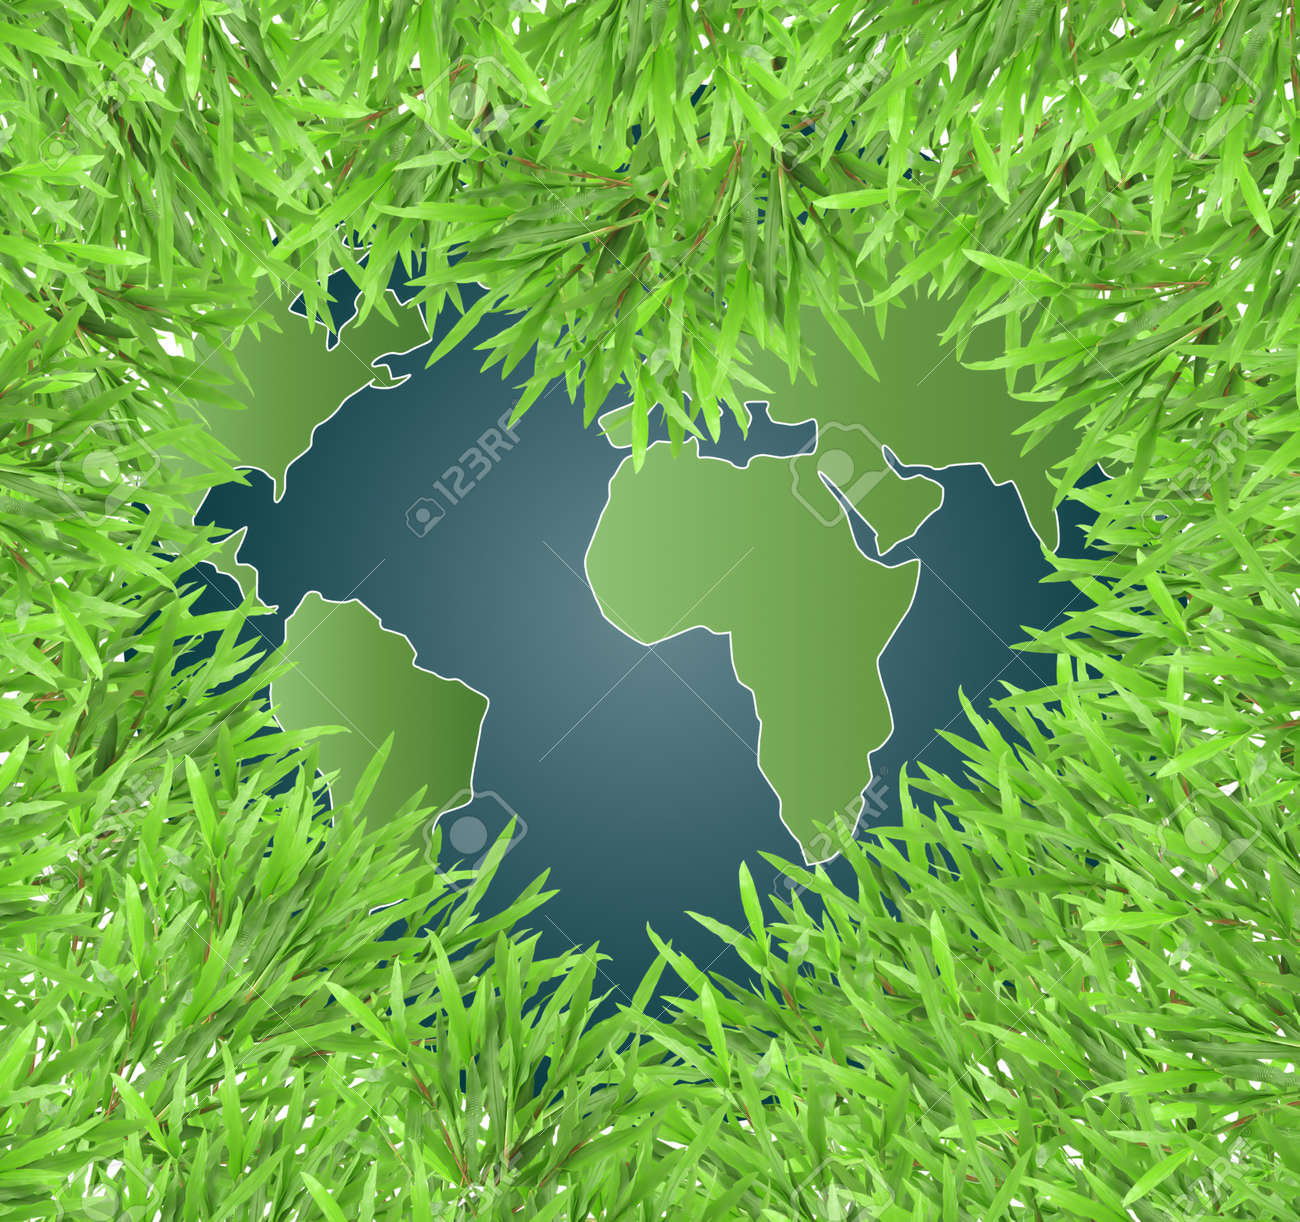 isolated green heart grass photo frame with   globe Stock Photo - 10798727